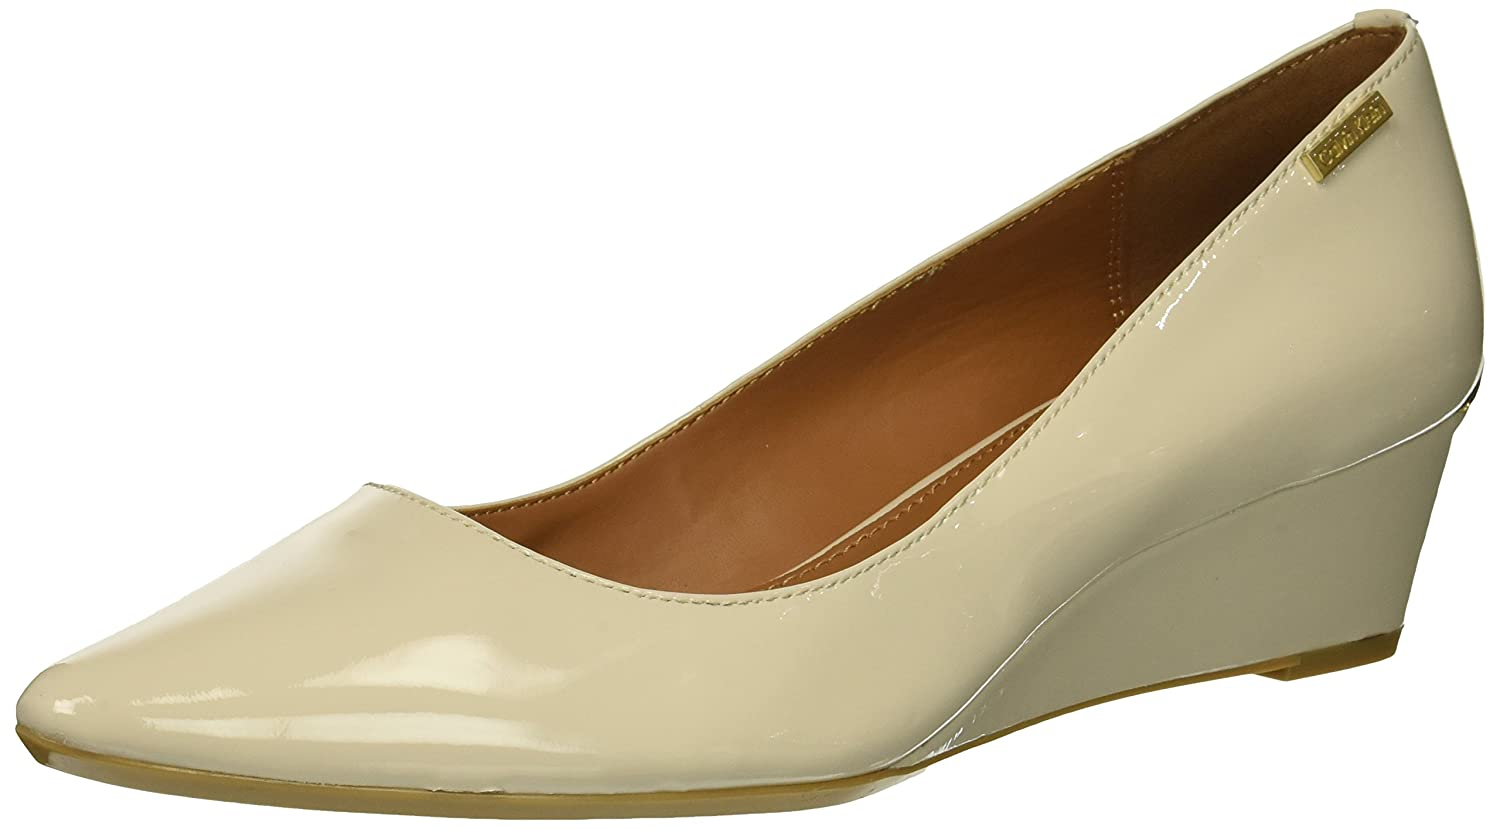 Calvin Klein Women's Germina Pump B07CHTZ63J 7 B(M) US|Soft White